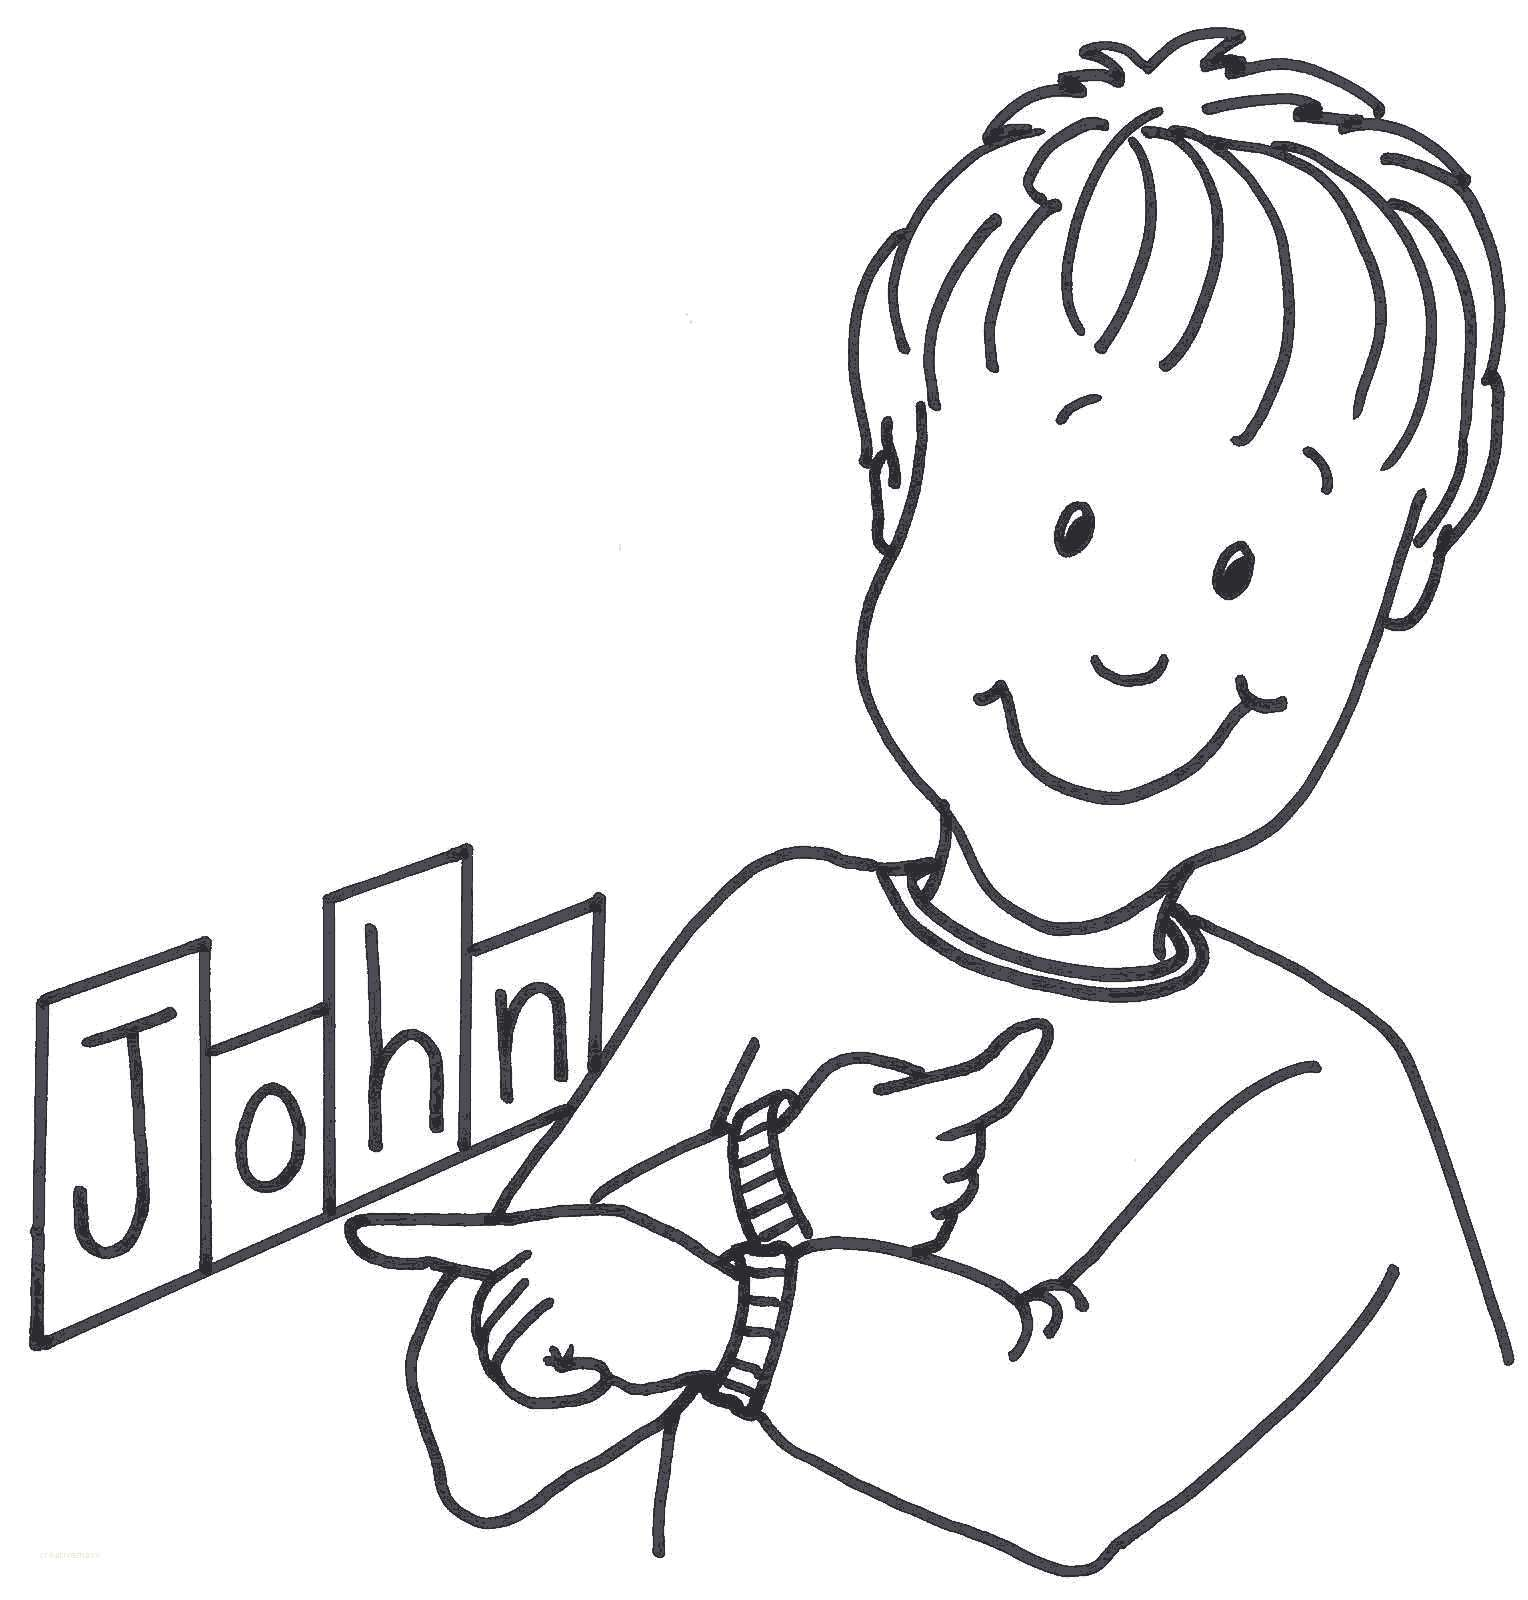 Name clipart. List of people names